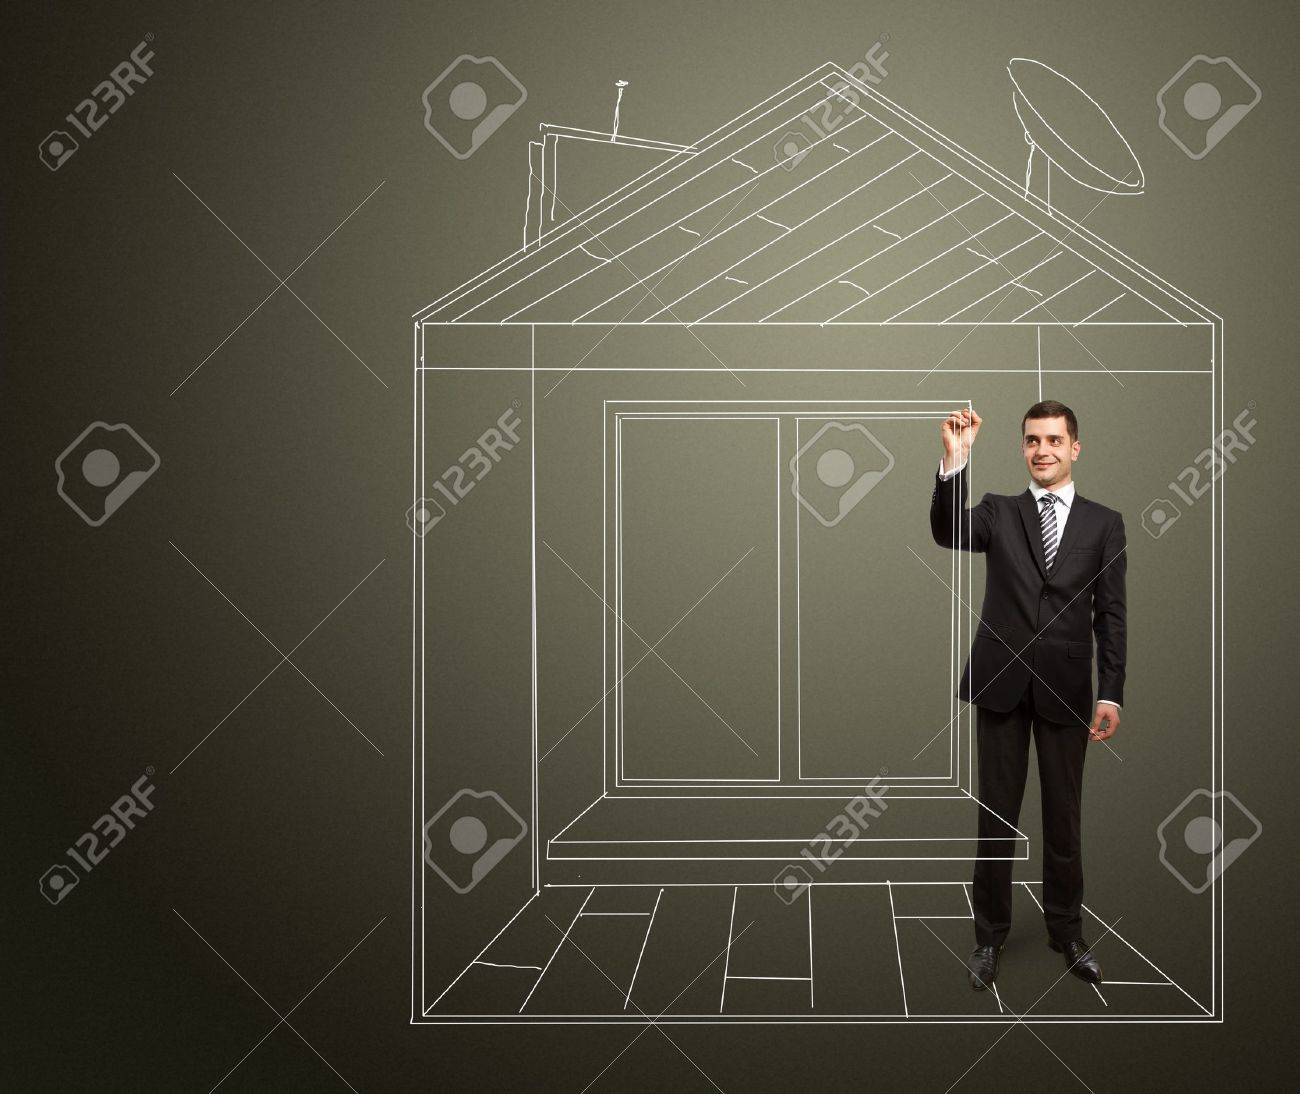 male businessman with marker in fictional house writting something on glass writeboard Stock Photo - 9287113